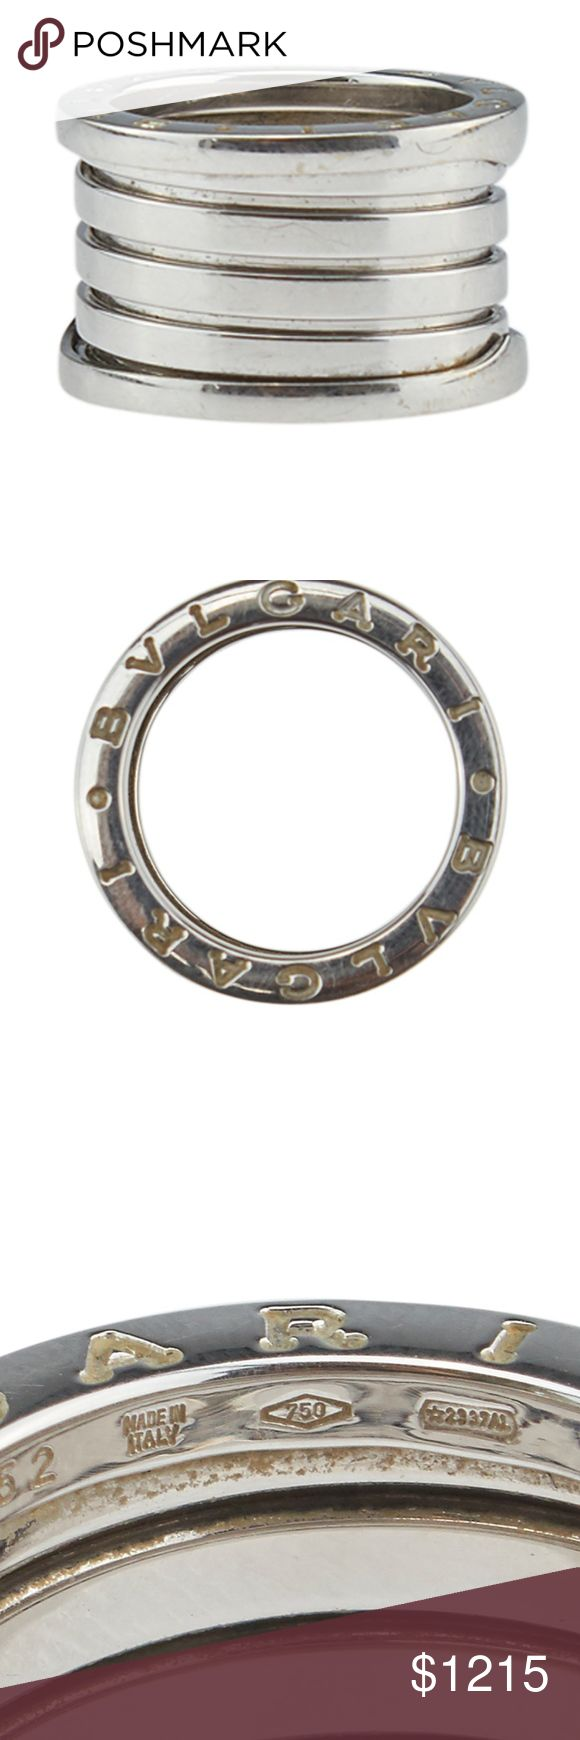 bvlgari bzero1 4band 18k ring size 6